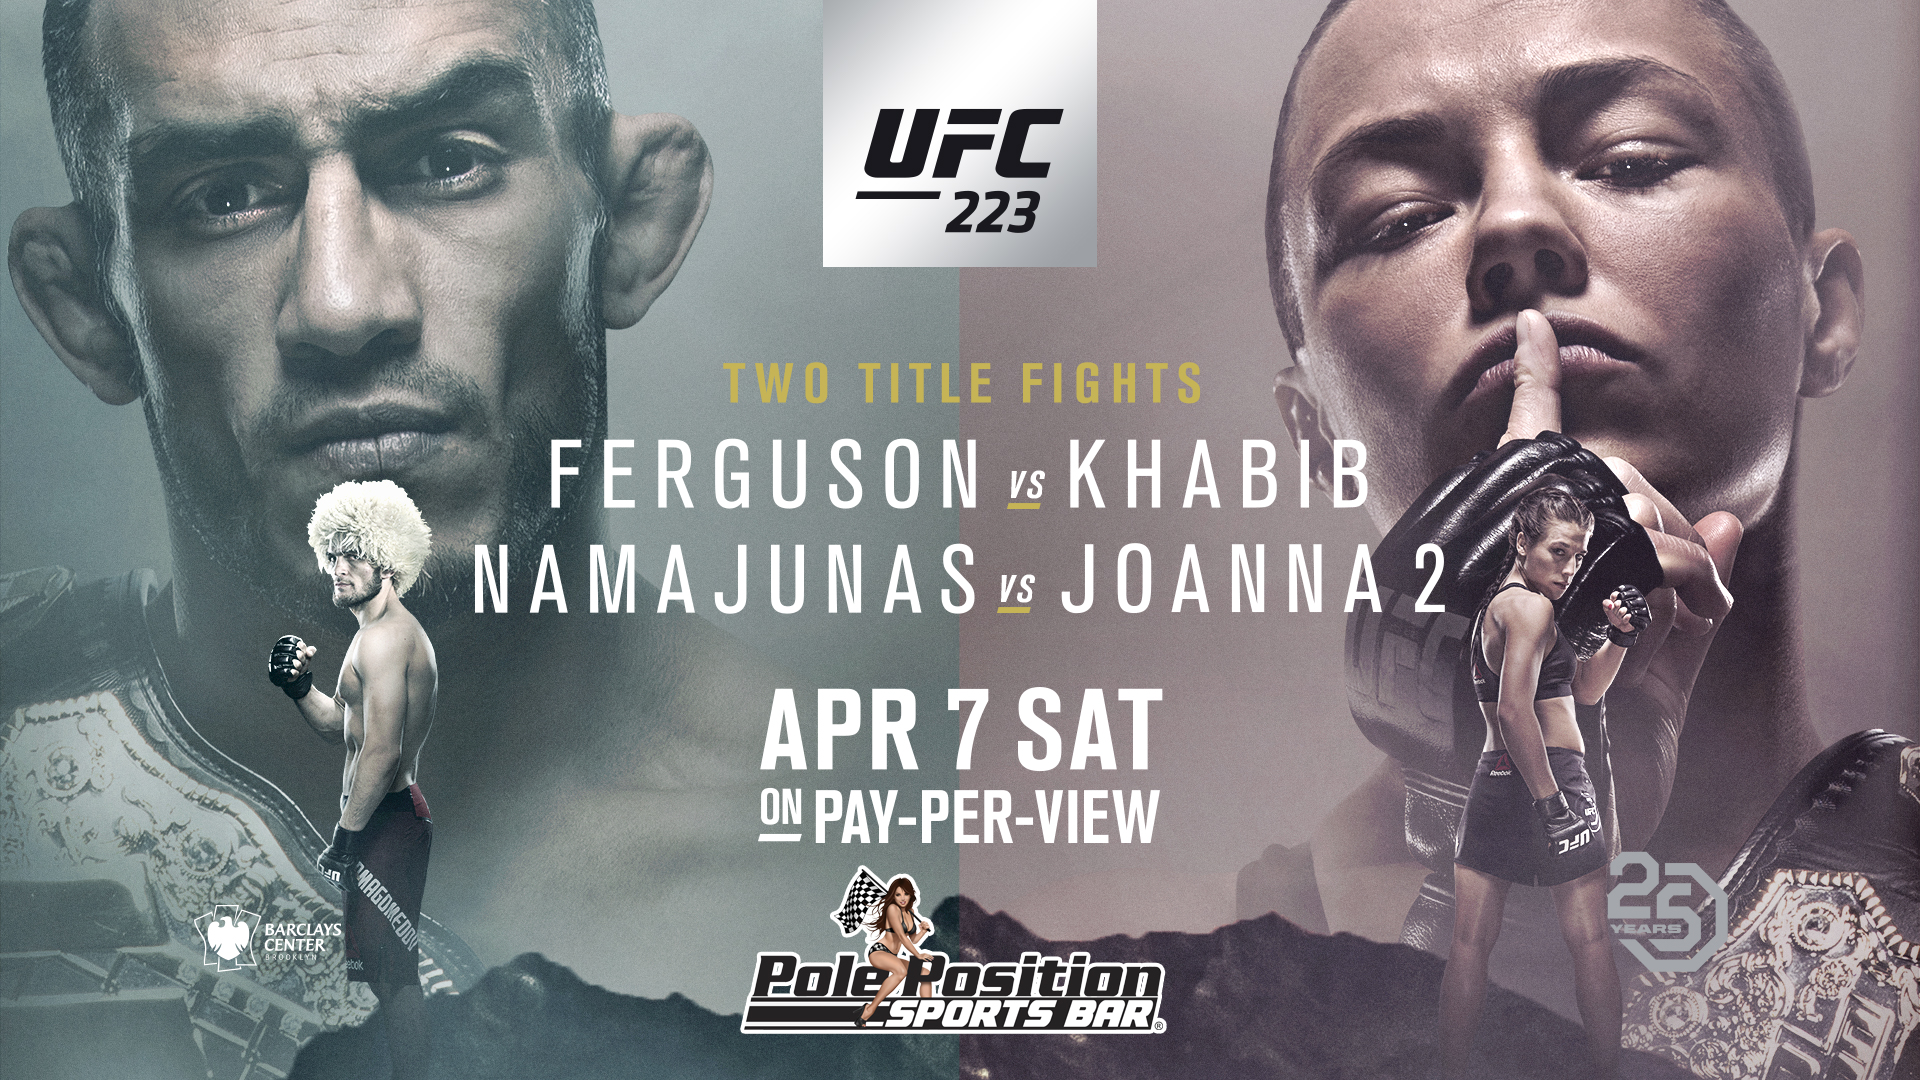 UFC 223 Ferguson vs Khabib Namajunas vs Joanna   No Cover at 1920x1080